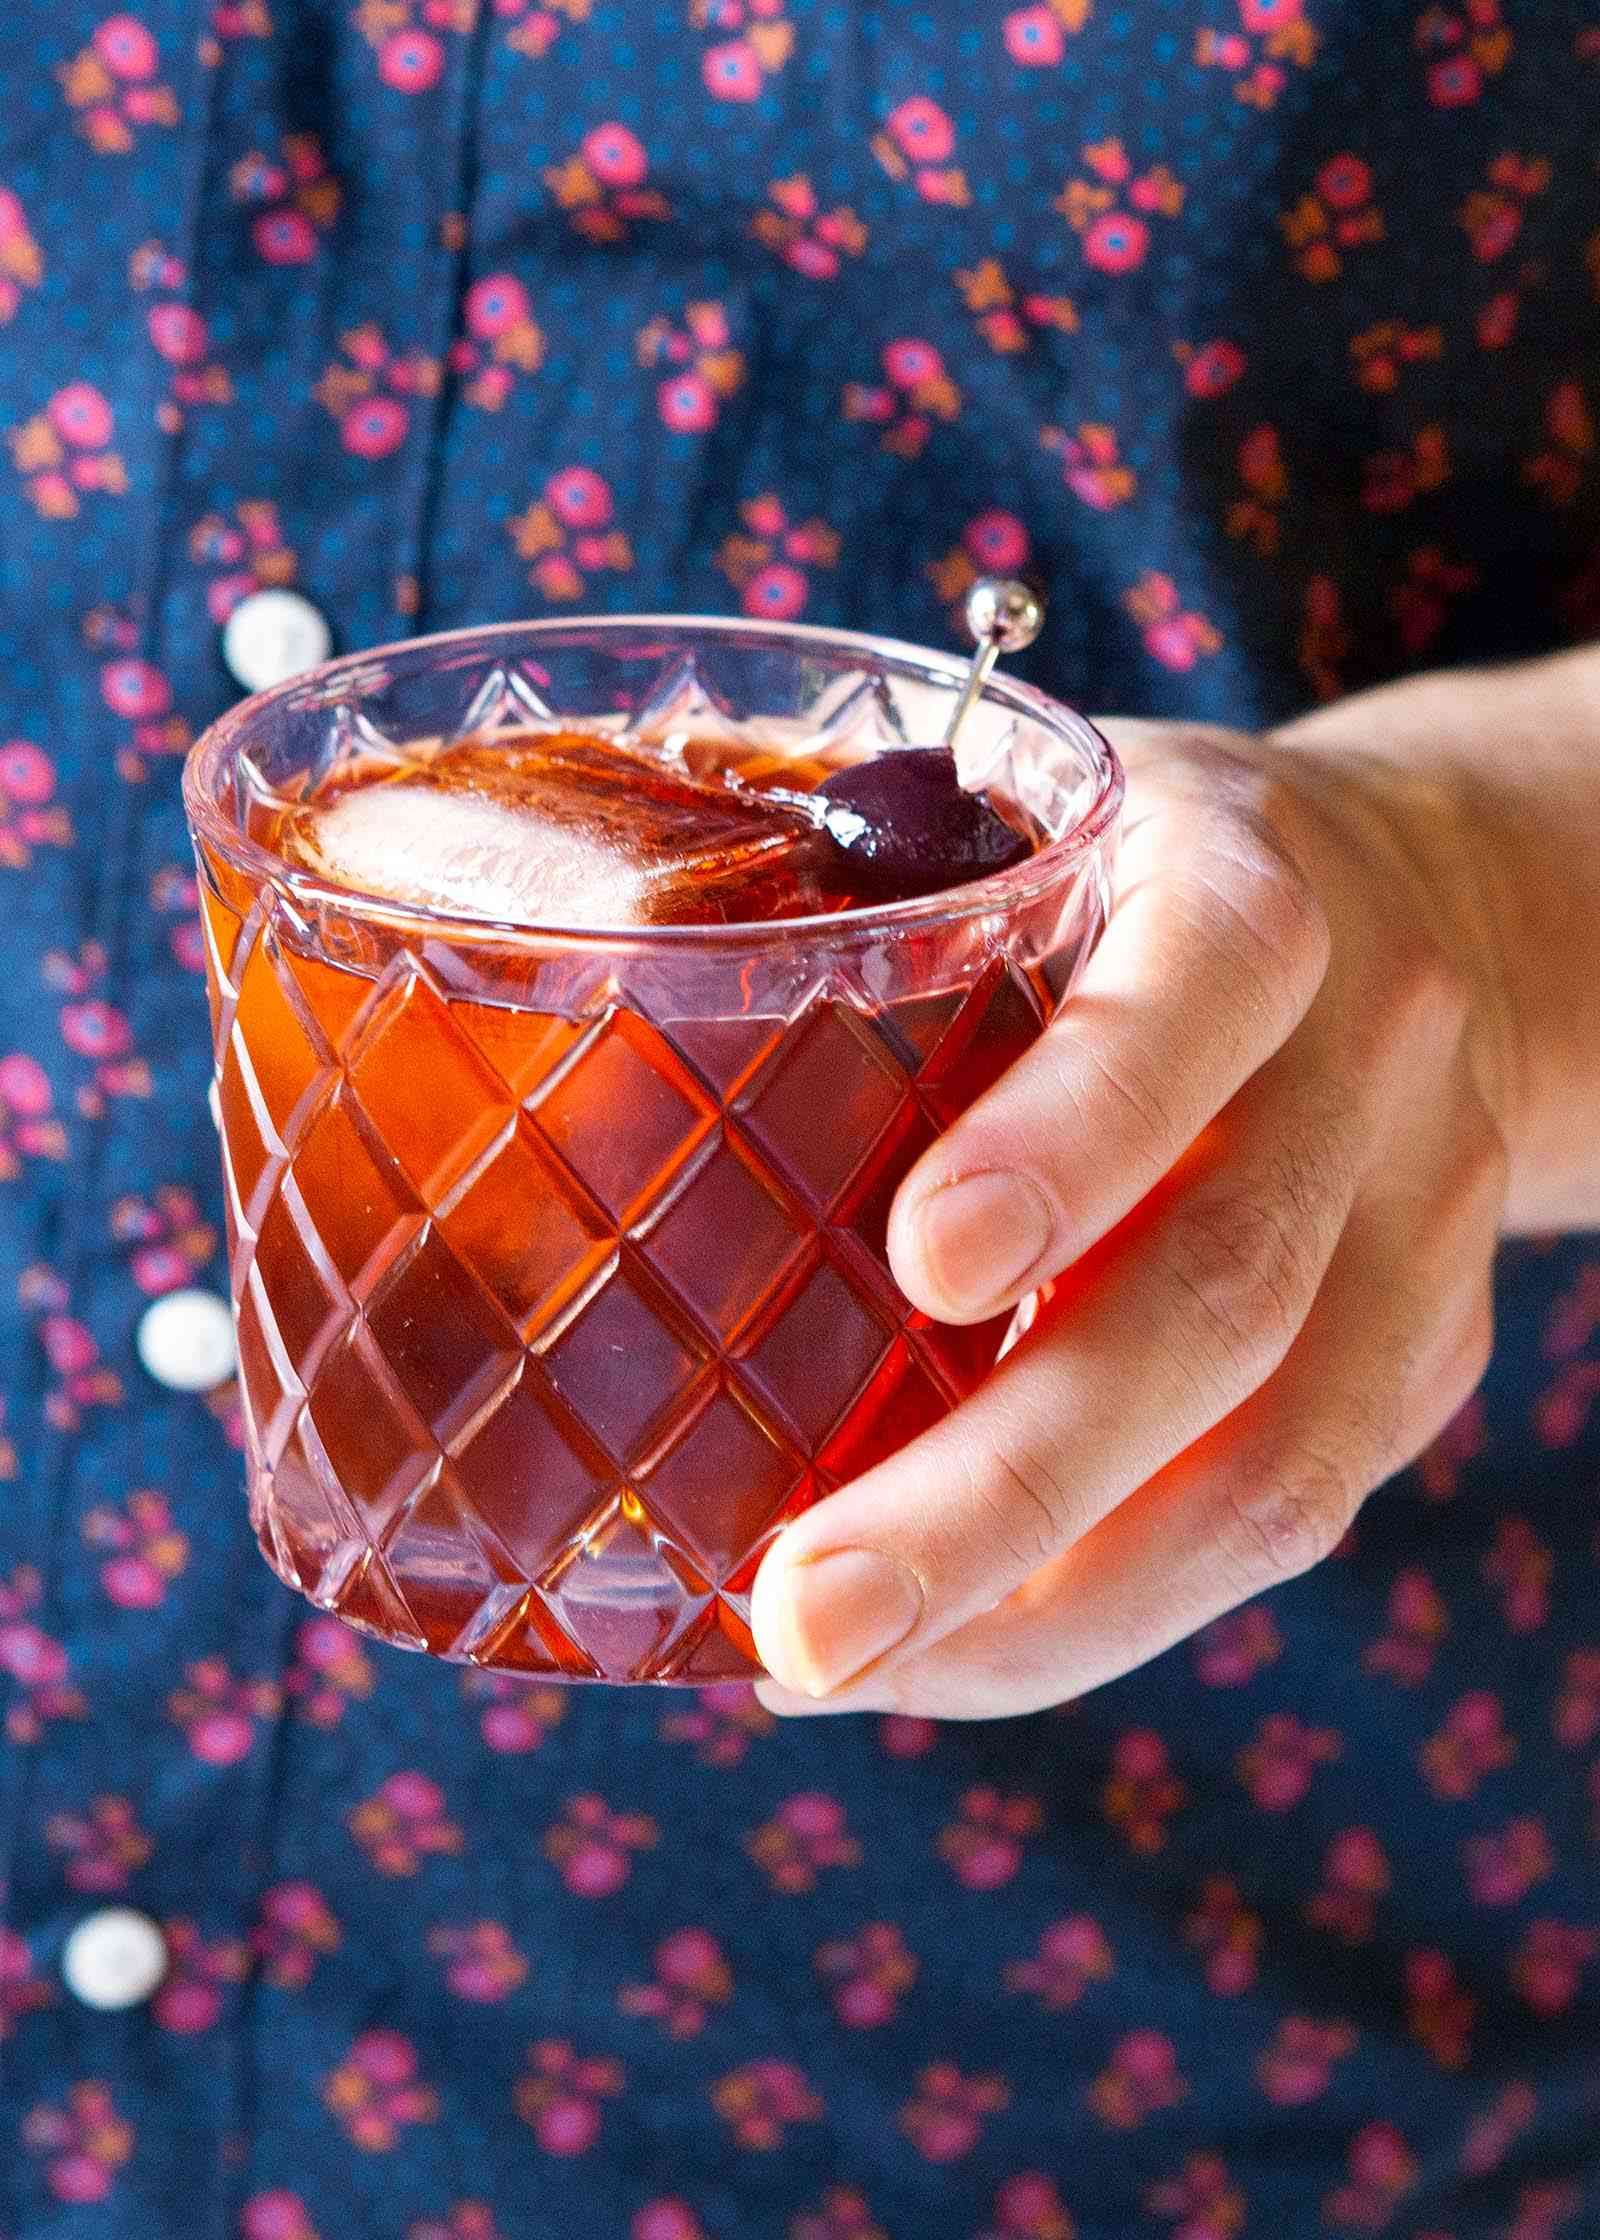 Vieux carre with square ice cubes and a cherry garnish are held in the hand of a person.